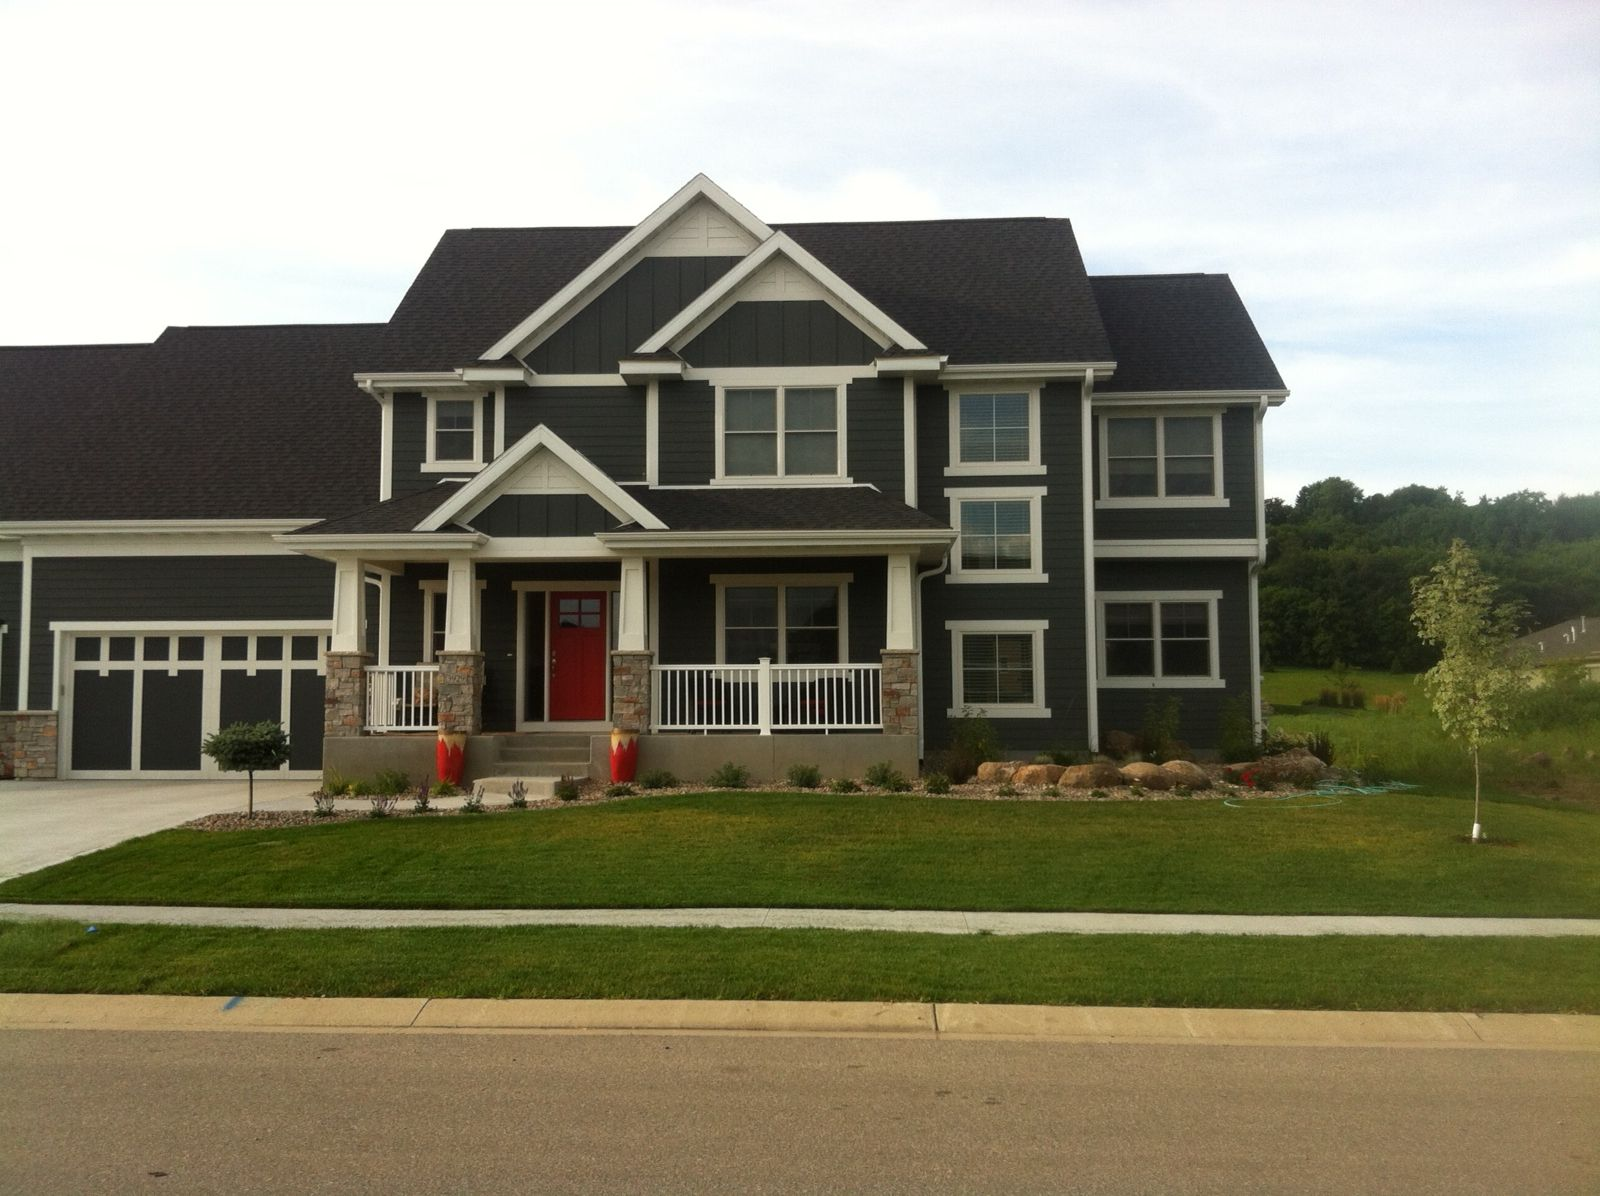 Best Images About Hardie Board Houses On Pinterest - Exterior hardie board